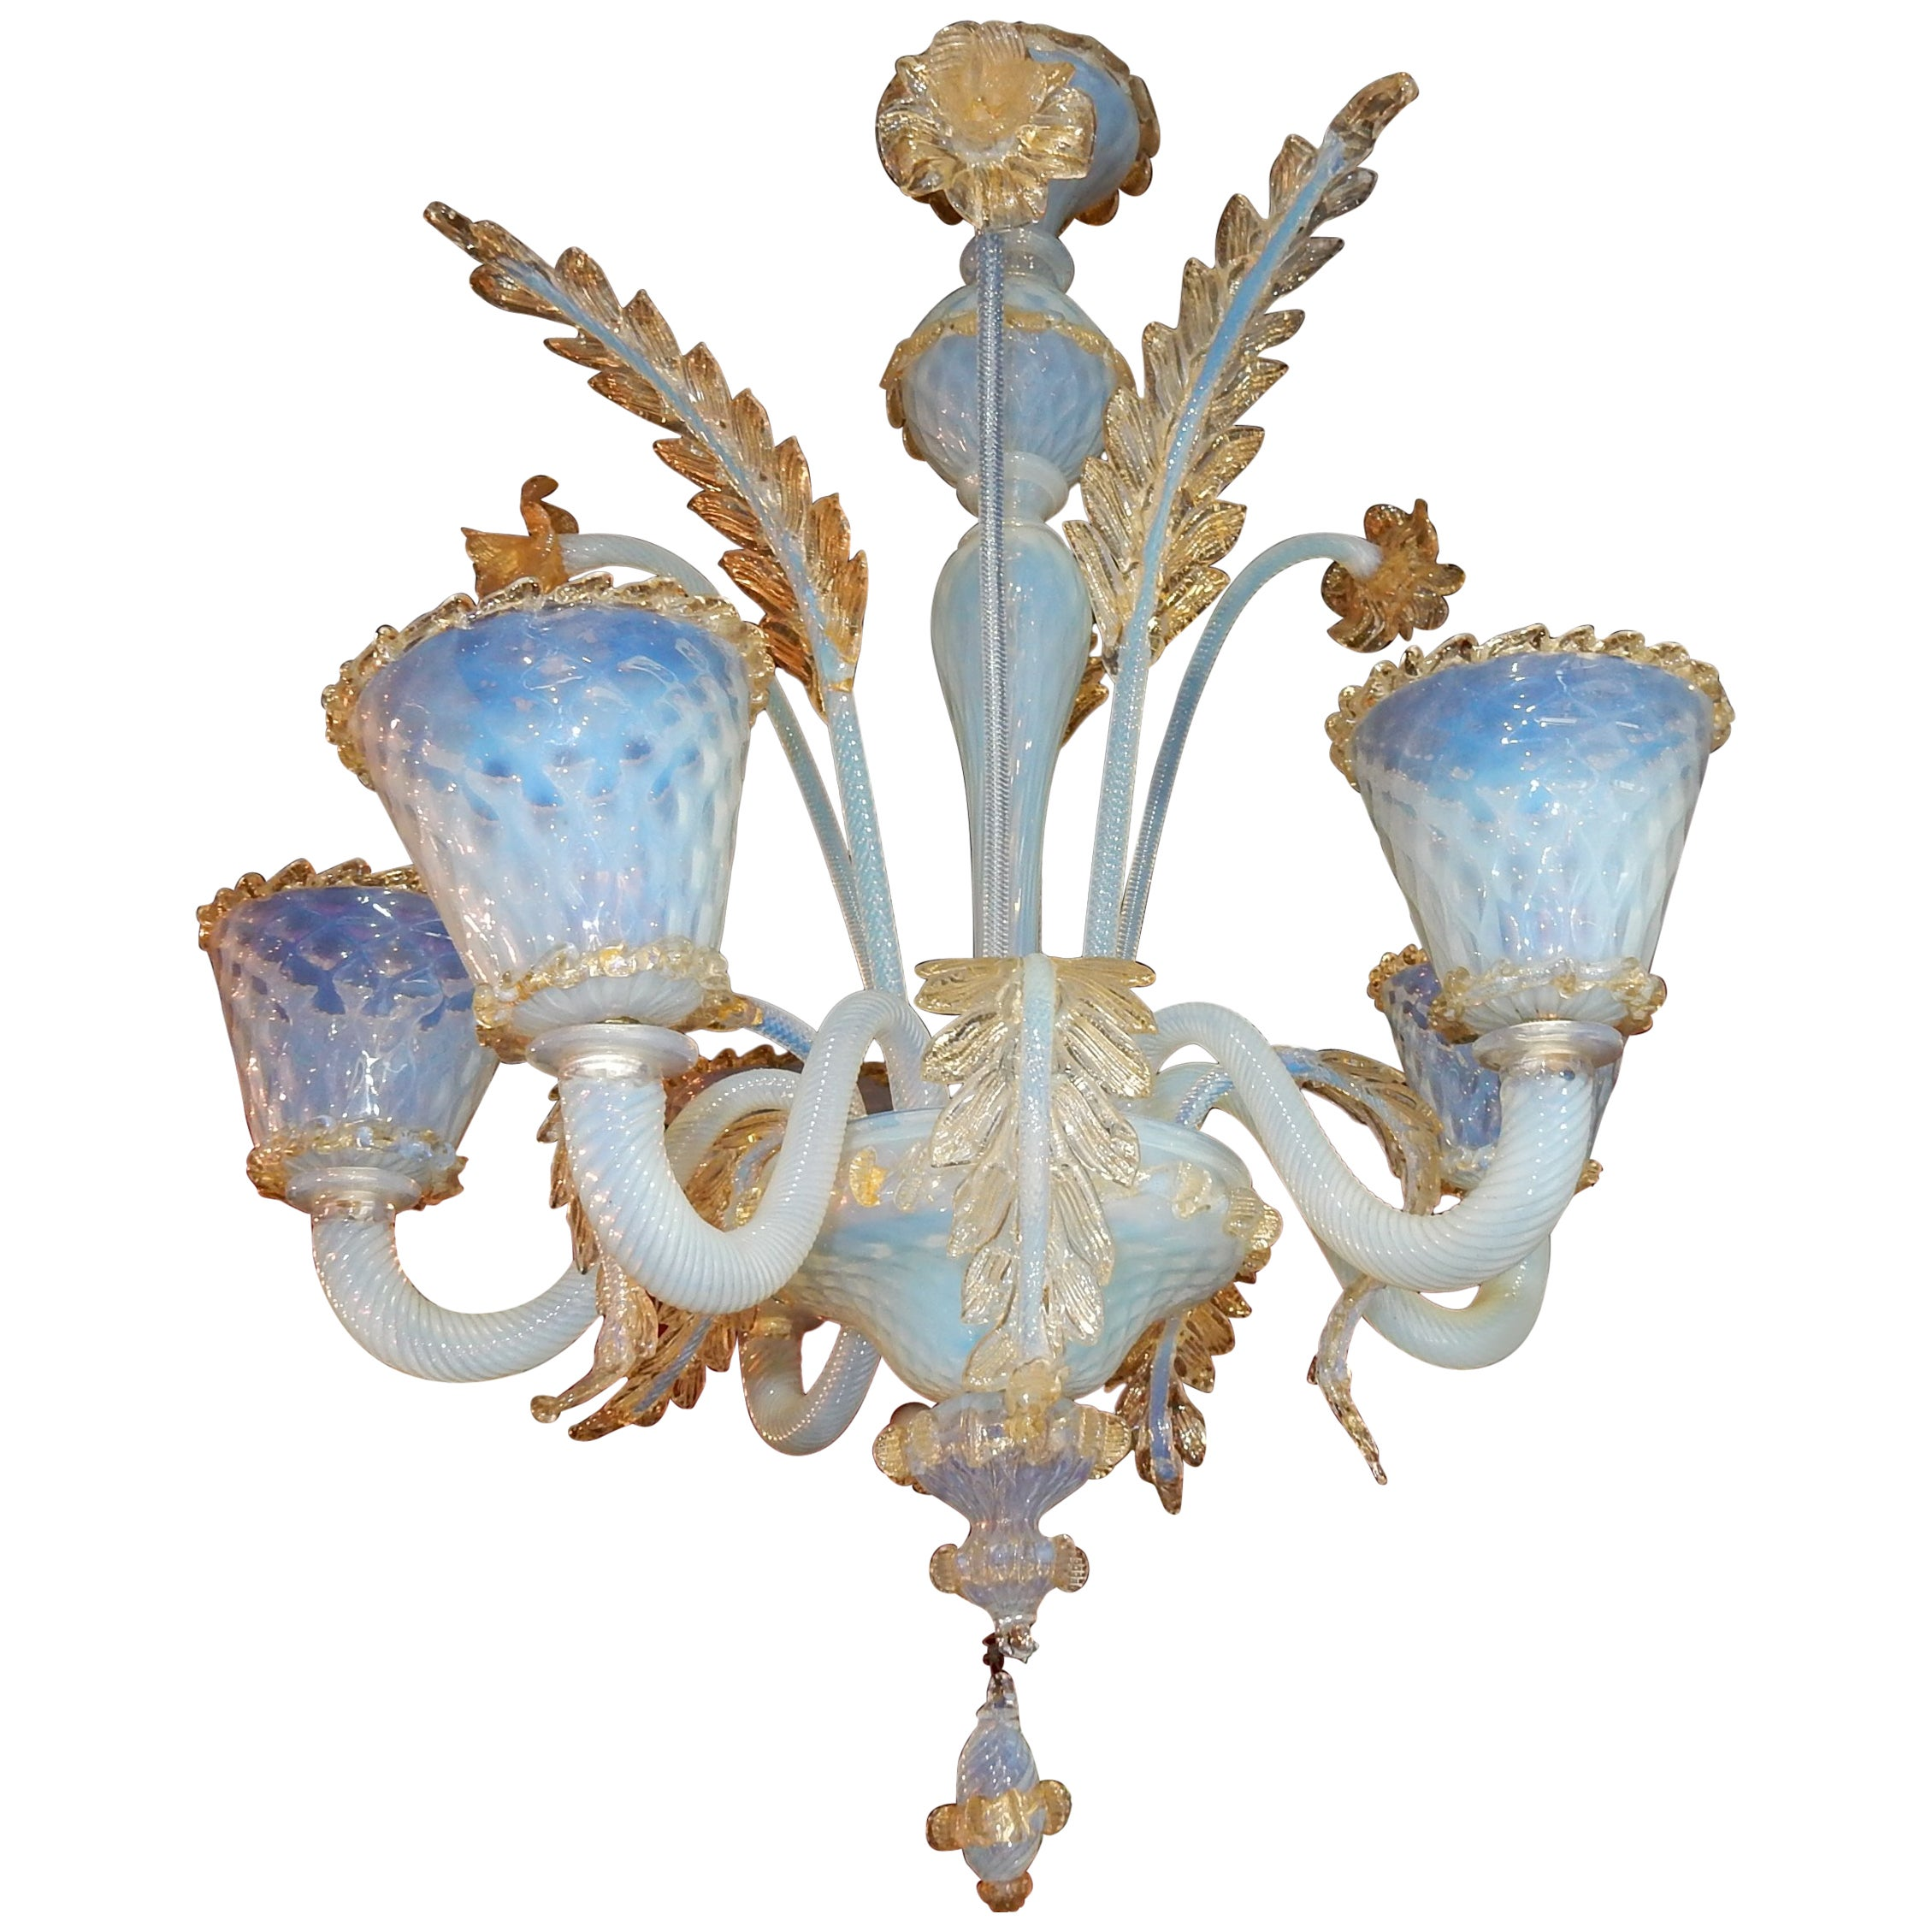 Vintage Murano Glass Chandelier of Murano Crystal with Gold Inclusion